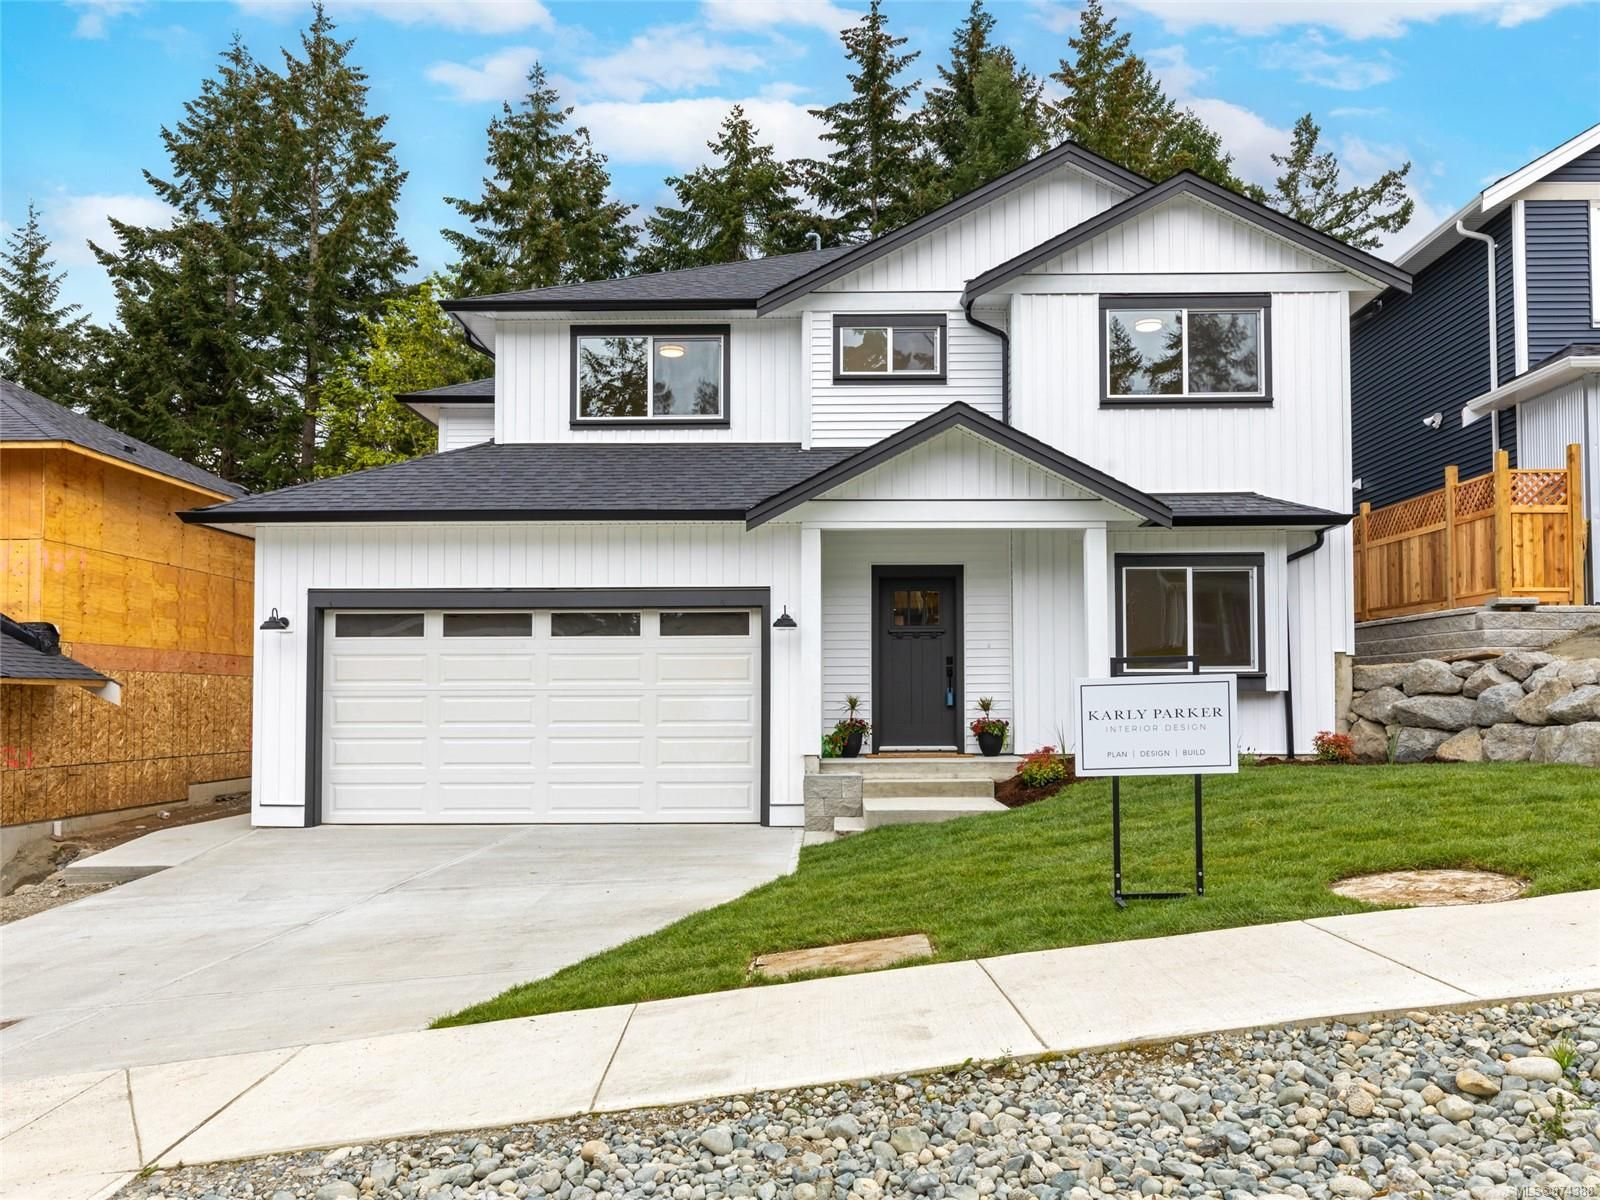 Main Photo: 107 Evelyn Cres in : Na Chase River House for sale (Nanaimo)  : MLS®# 874388